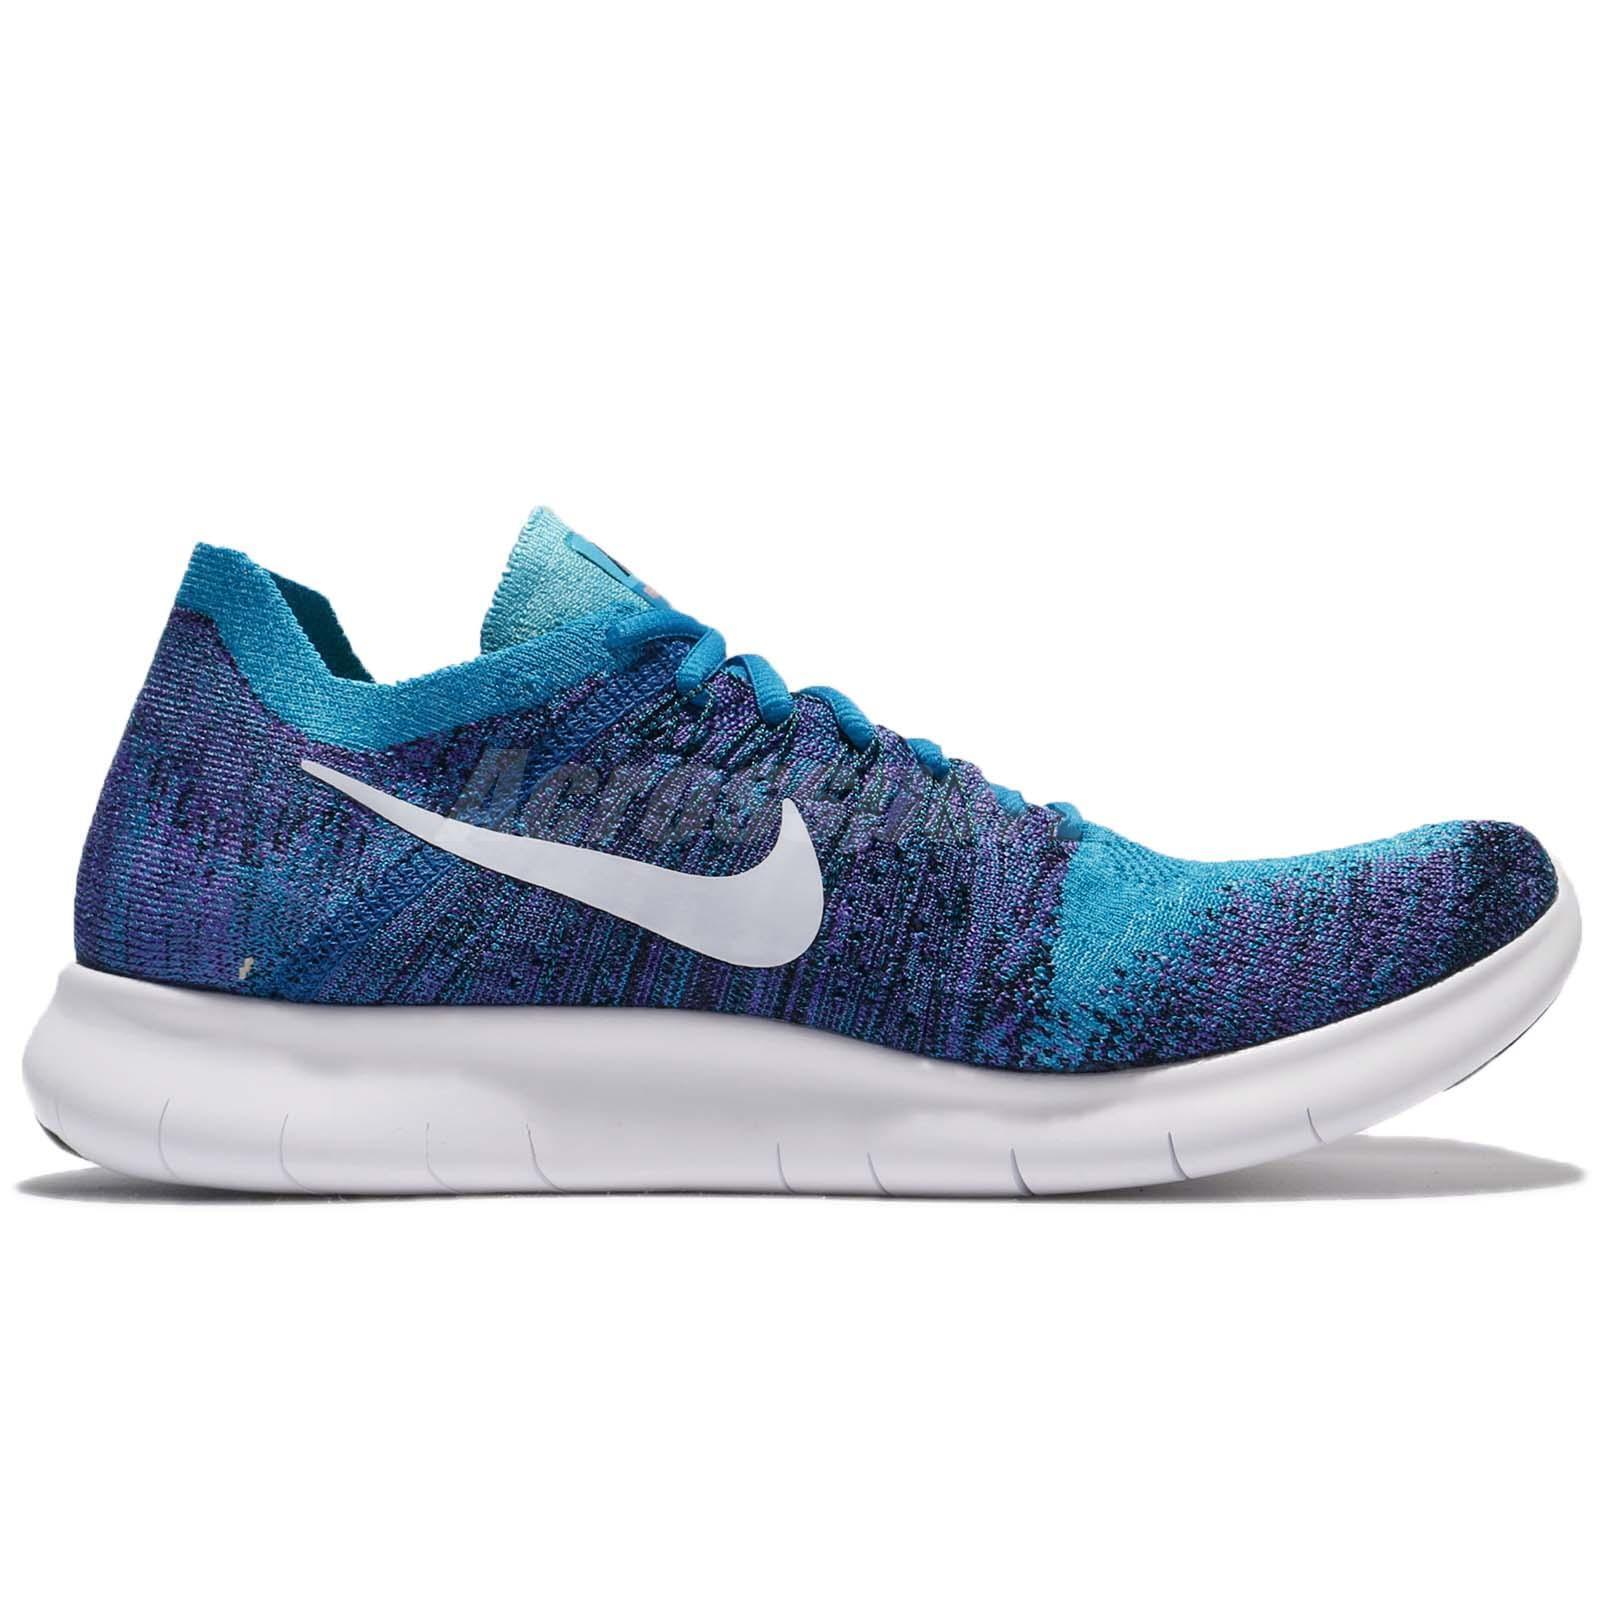 finest selection 83098 42897 ... Nike Free RN Flyknit 2017 2017 2017 Run Blue Men Running 880843-403  SIZE 14 ...